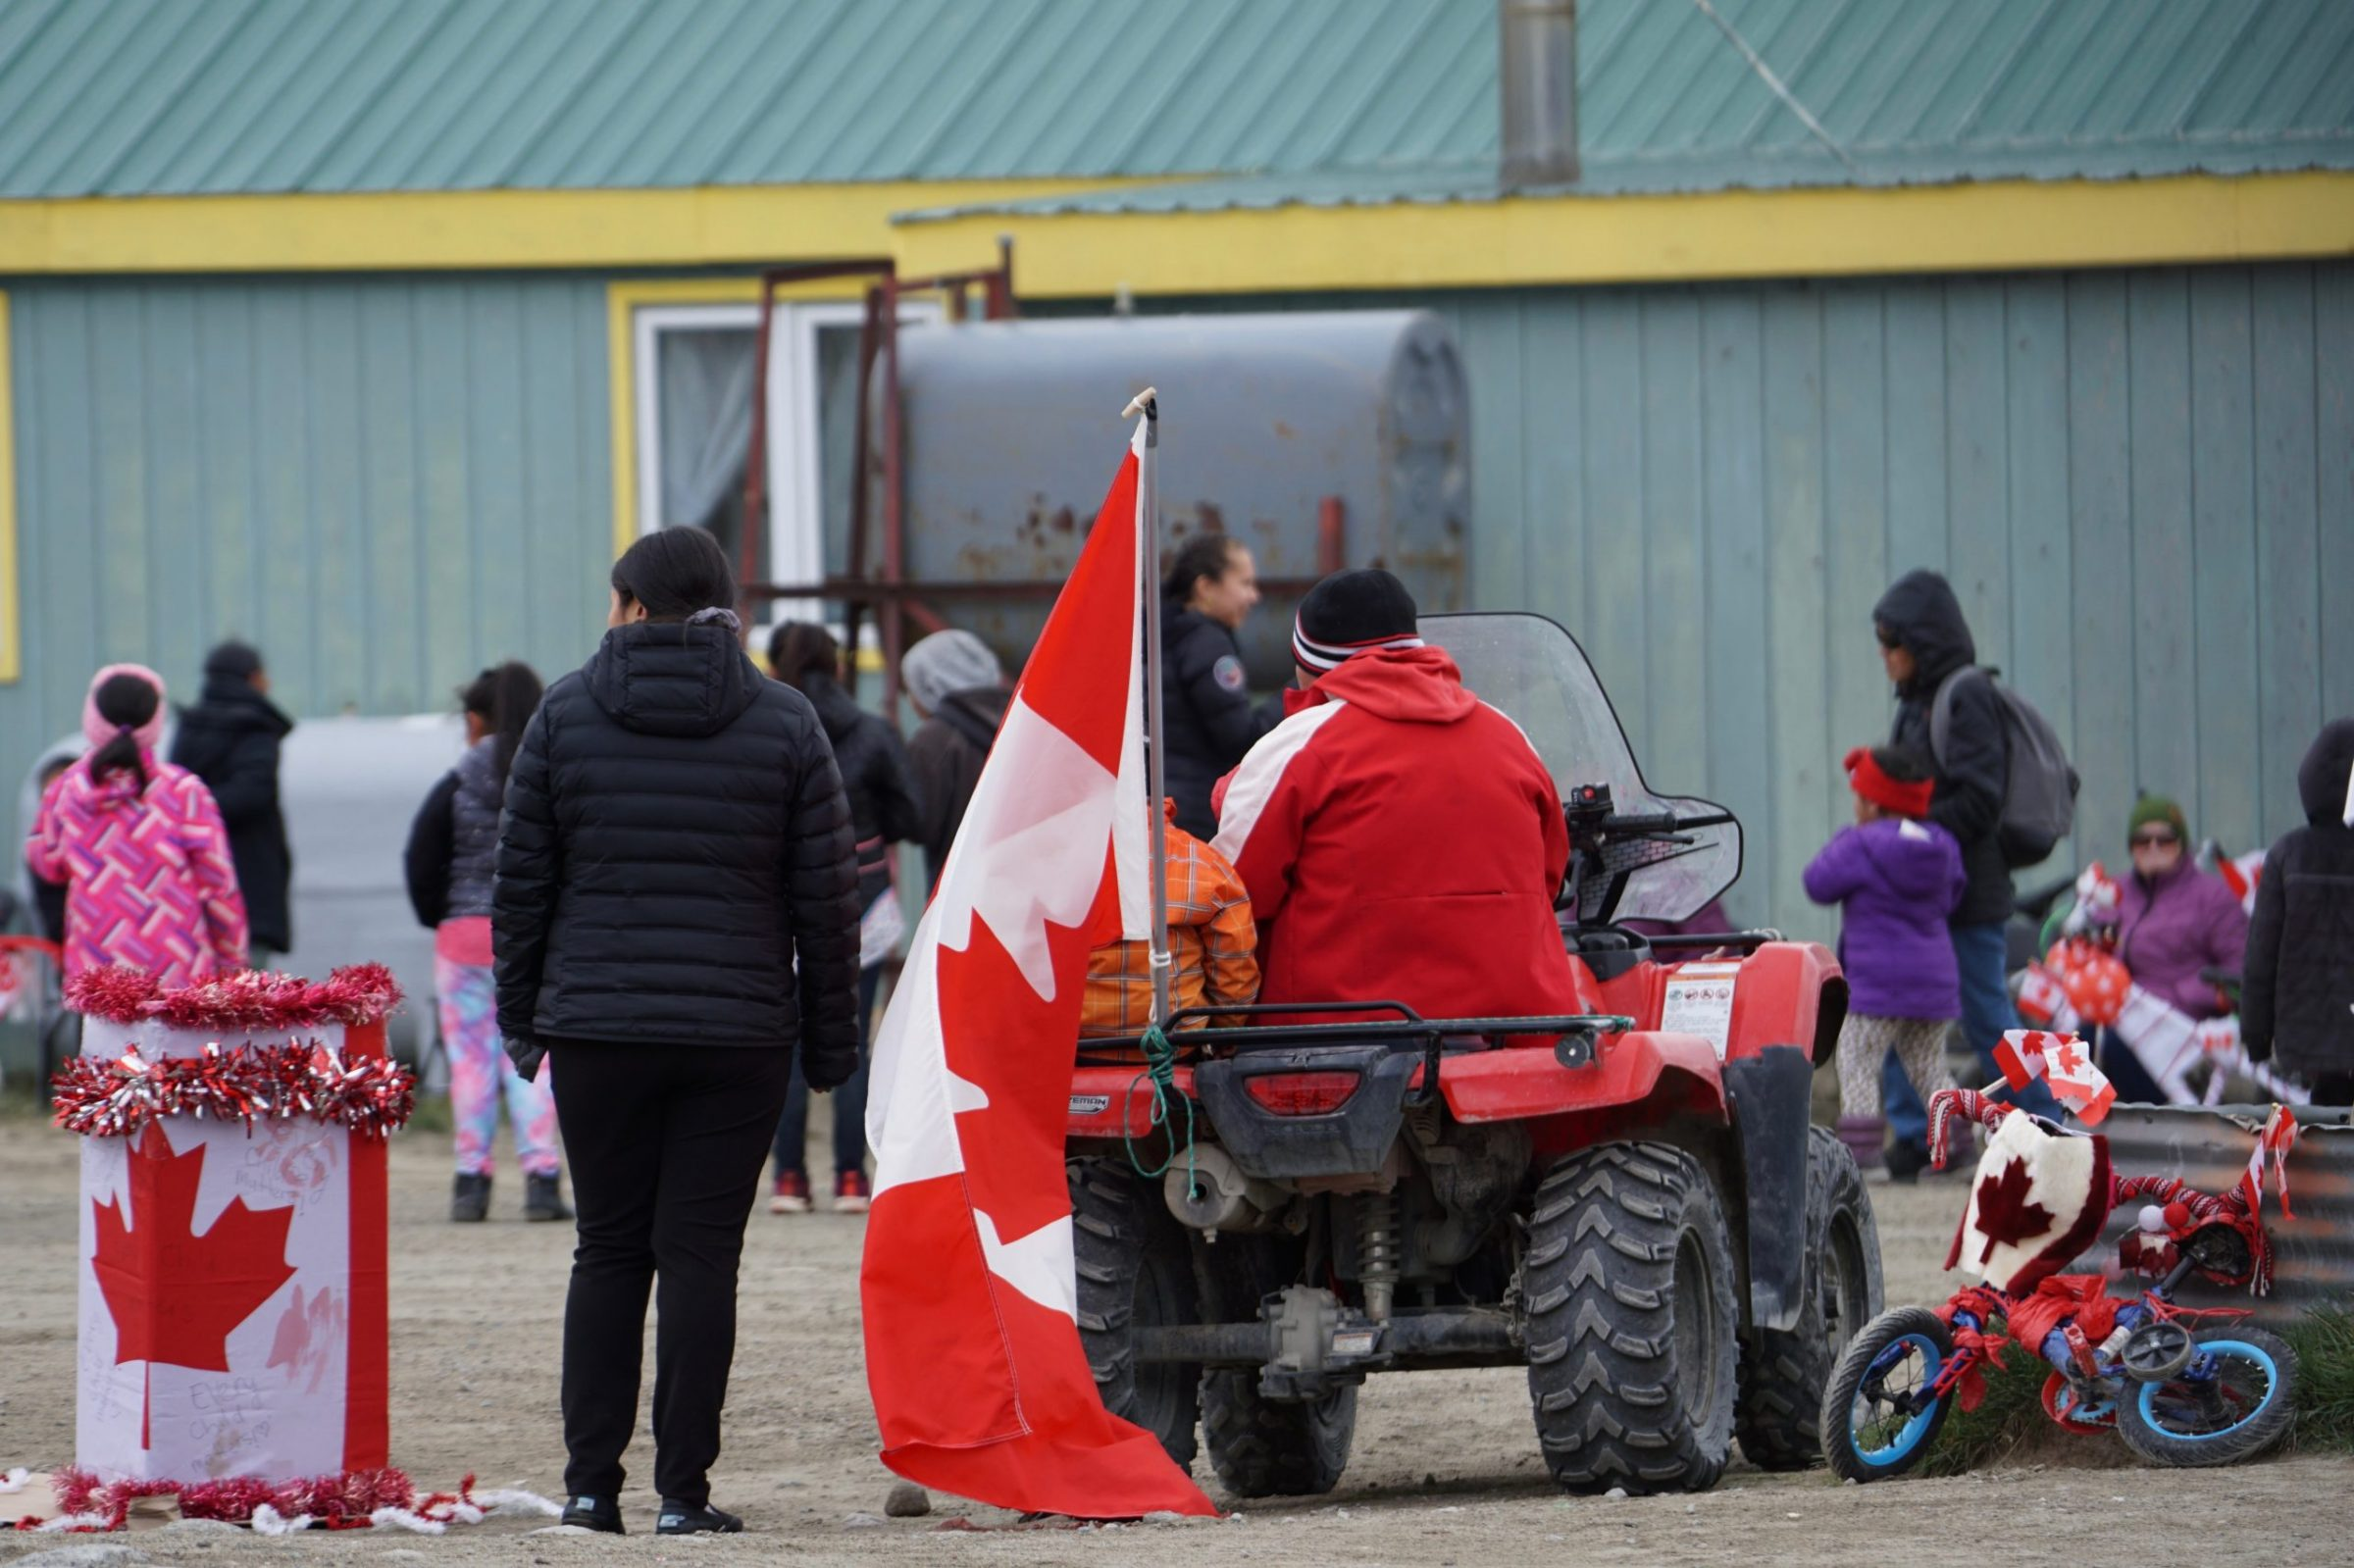 Pangnirtung residents gather to celebrate Canada Day on Thursday. Festivities included a community barbecue and contests for bike decorations and crazy hats. (Photo by Cedric Yves Denis)